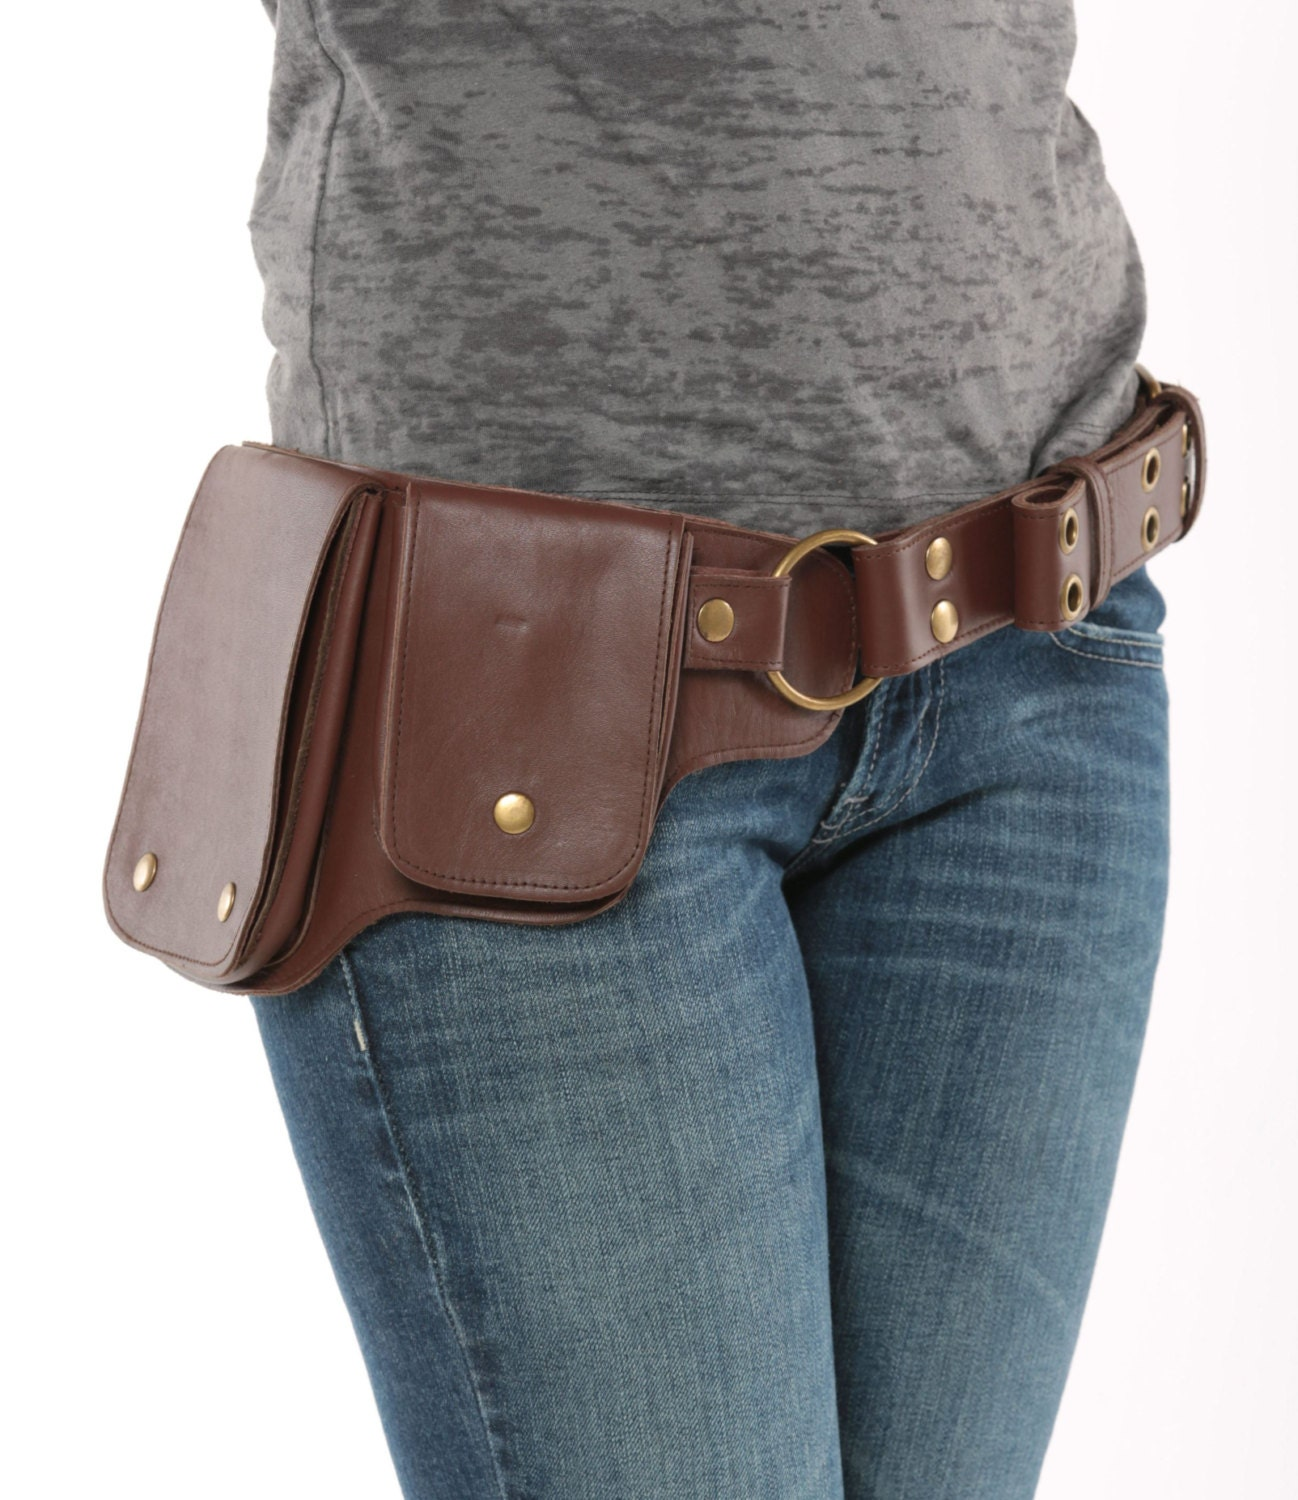 hip pack leather utility belt brown largest pockets of